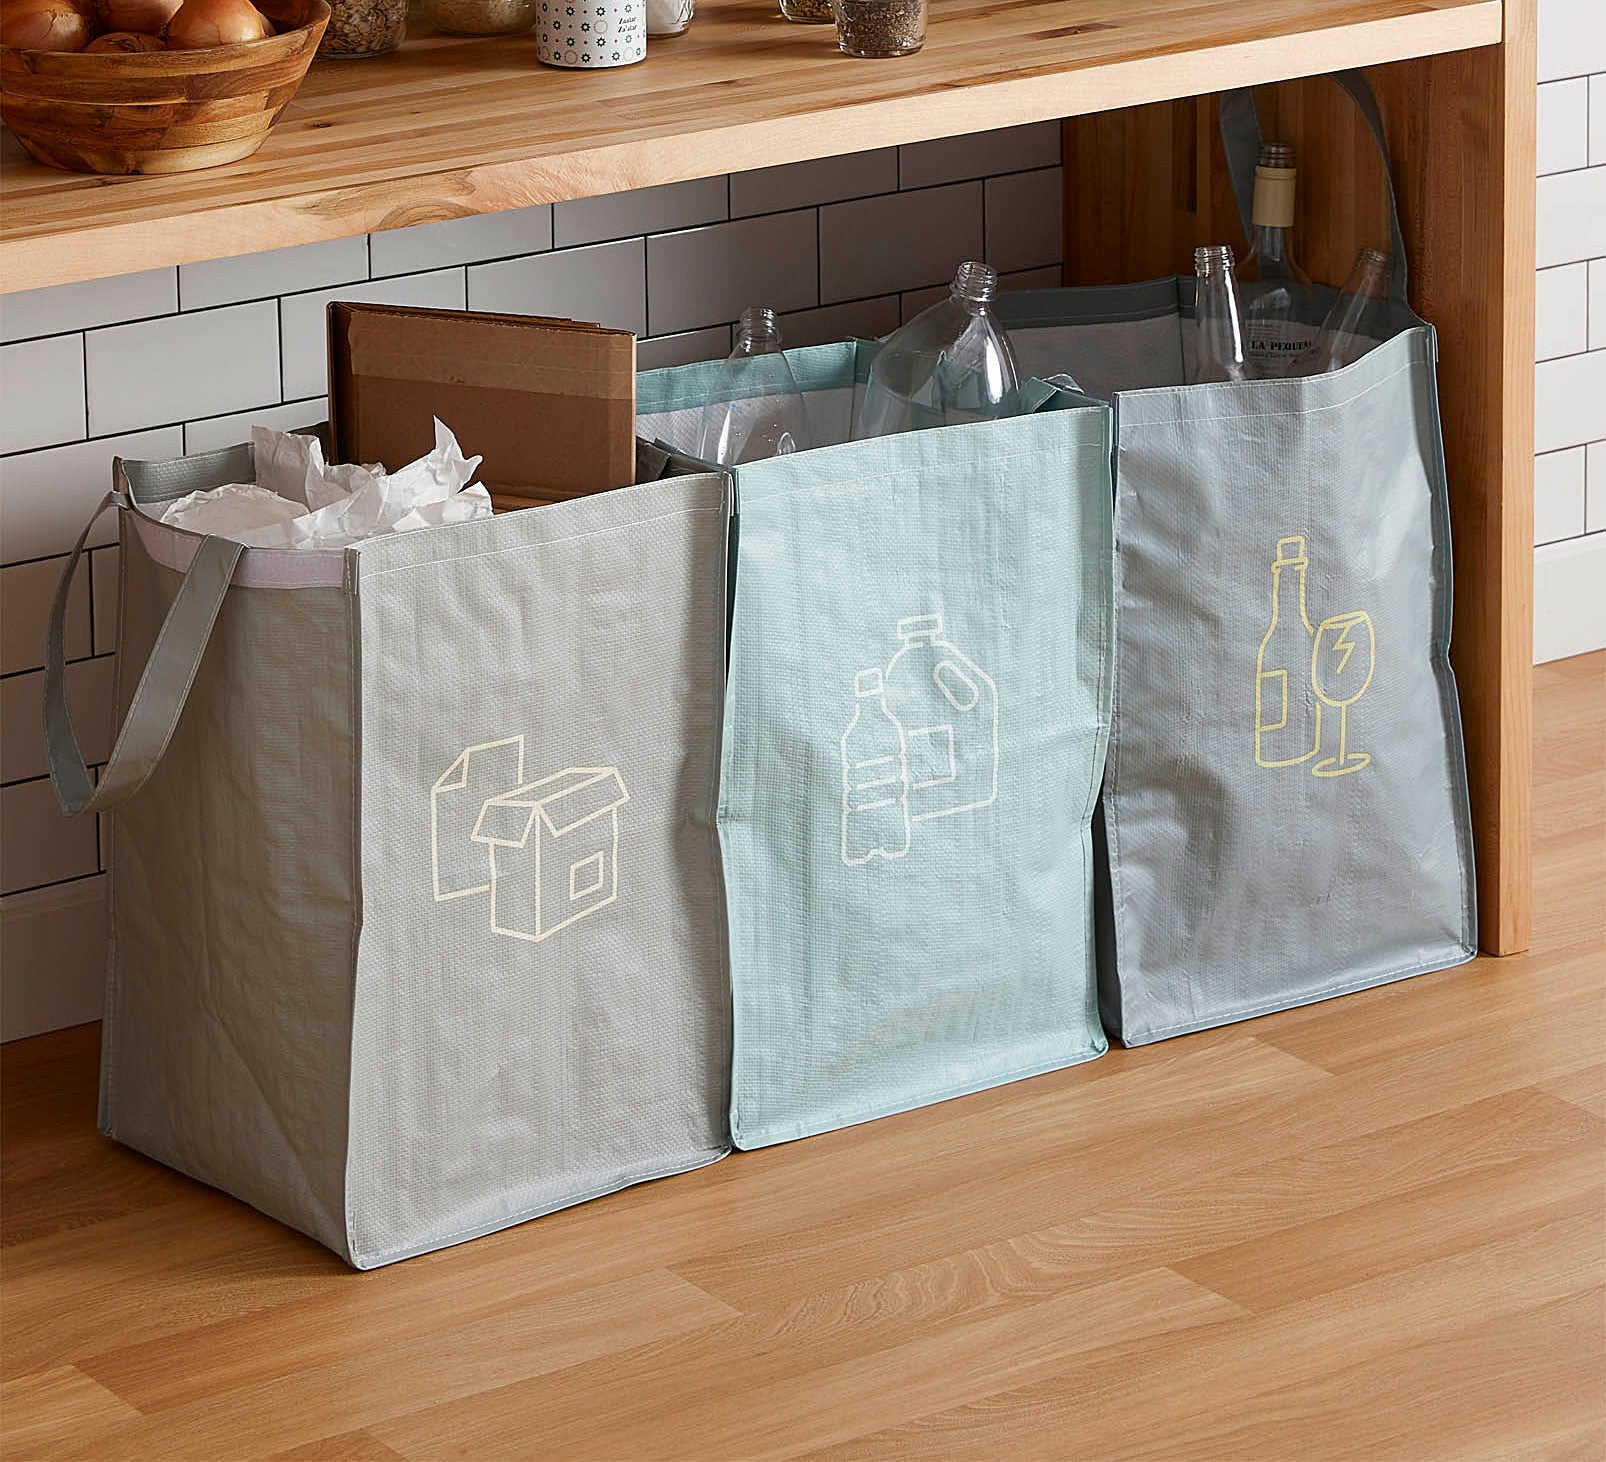 Three large plastic bags with different types of recycled materials in each